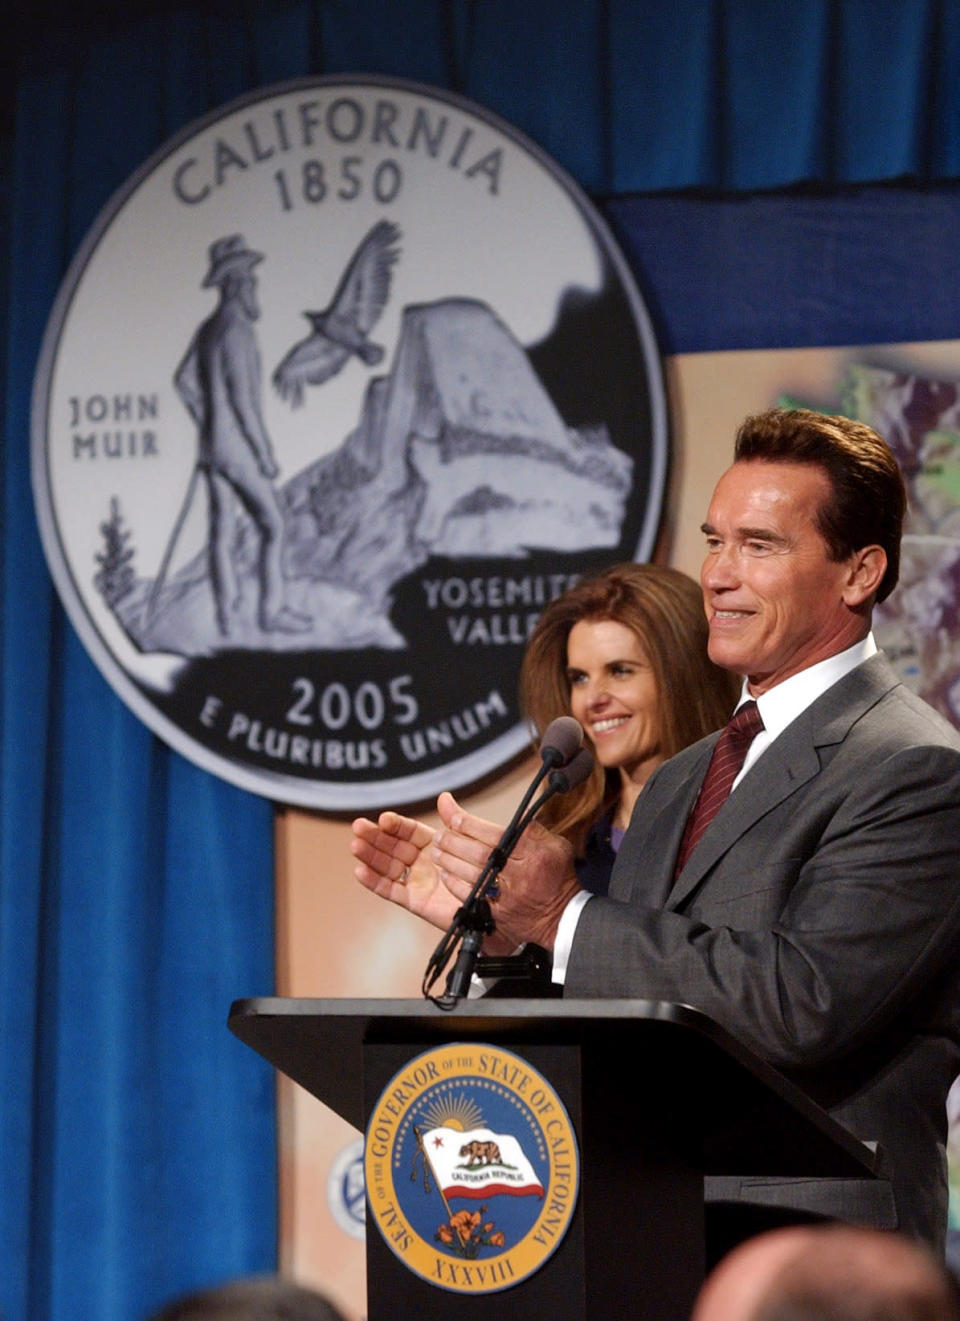 FILE - California Gov. Arnold Schwarzenegger and his wife Maria Shriver applaud during ceremonies to launch the John Muir commemorative quarter coin, reverse shown at left, in Sacramento, Calif., Monday, Jan. 31, 2005. The Sierra Club is reckoning with the racist views of founder John Muir, the naturalist who helped spawn environmentalism. The San Francisco-based environmental group said Wednesday that Muir was part of the group's history perpetuating white supremacy. Executive Director Michael Brune says Muir made racist remarks about Black people and Native Americans, though his views later evolved. (AP Photo/Rich Pedroncelli, File)